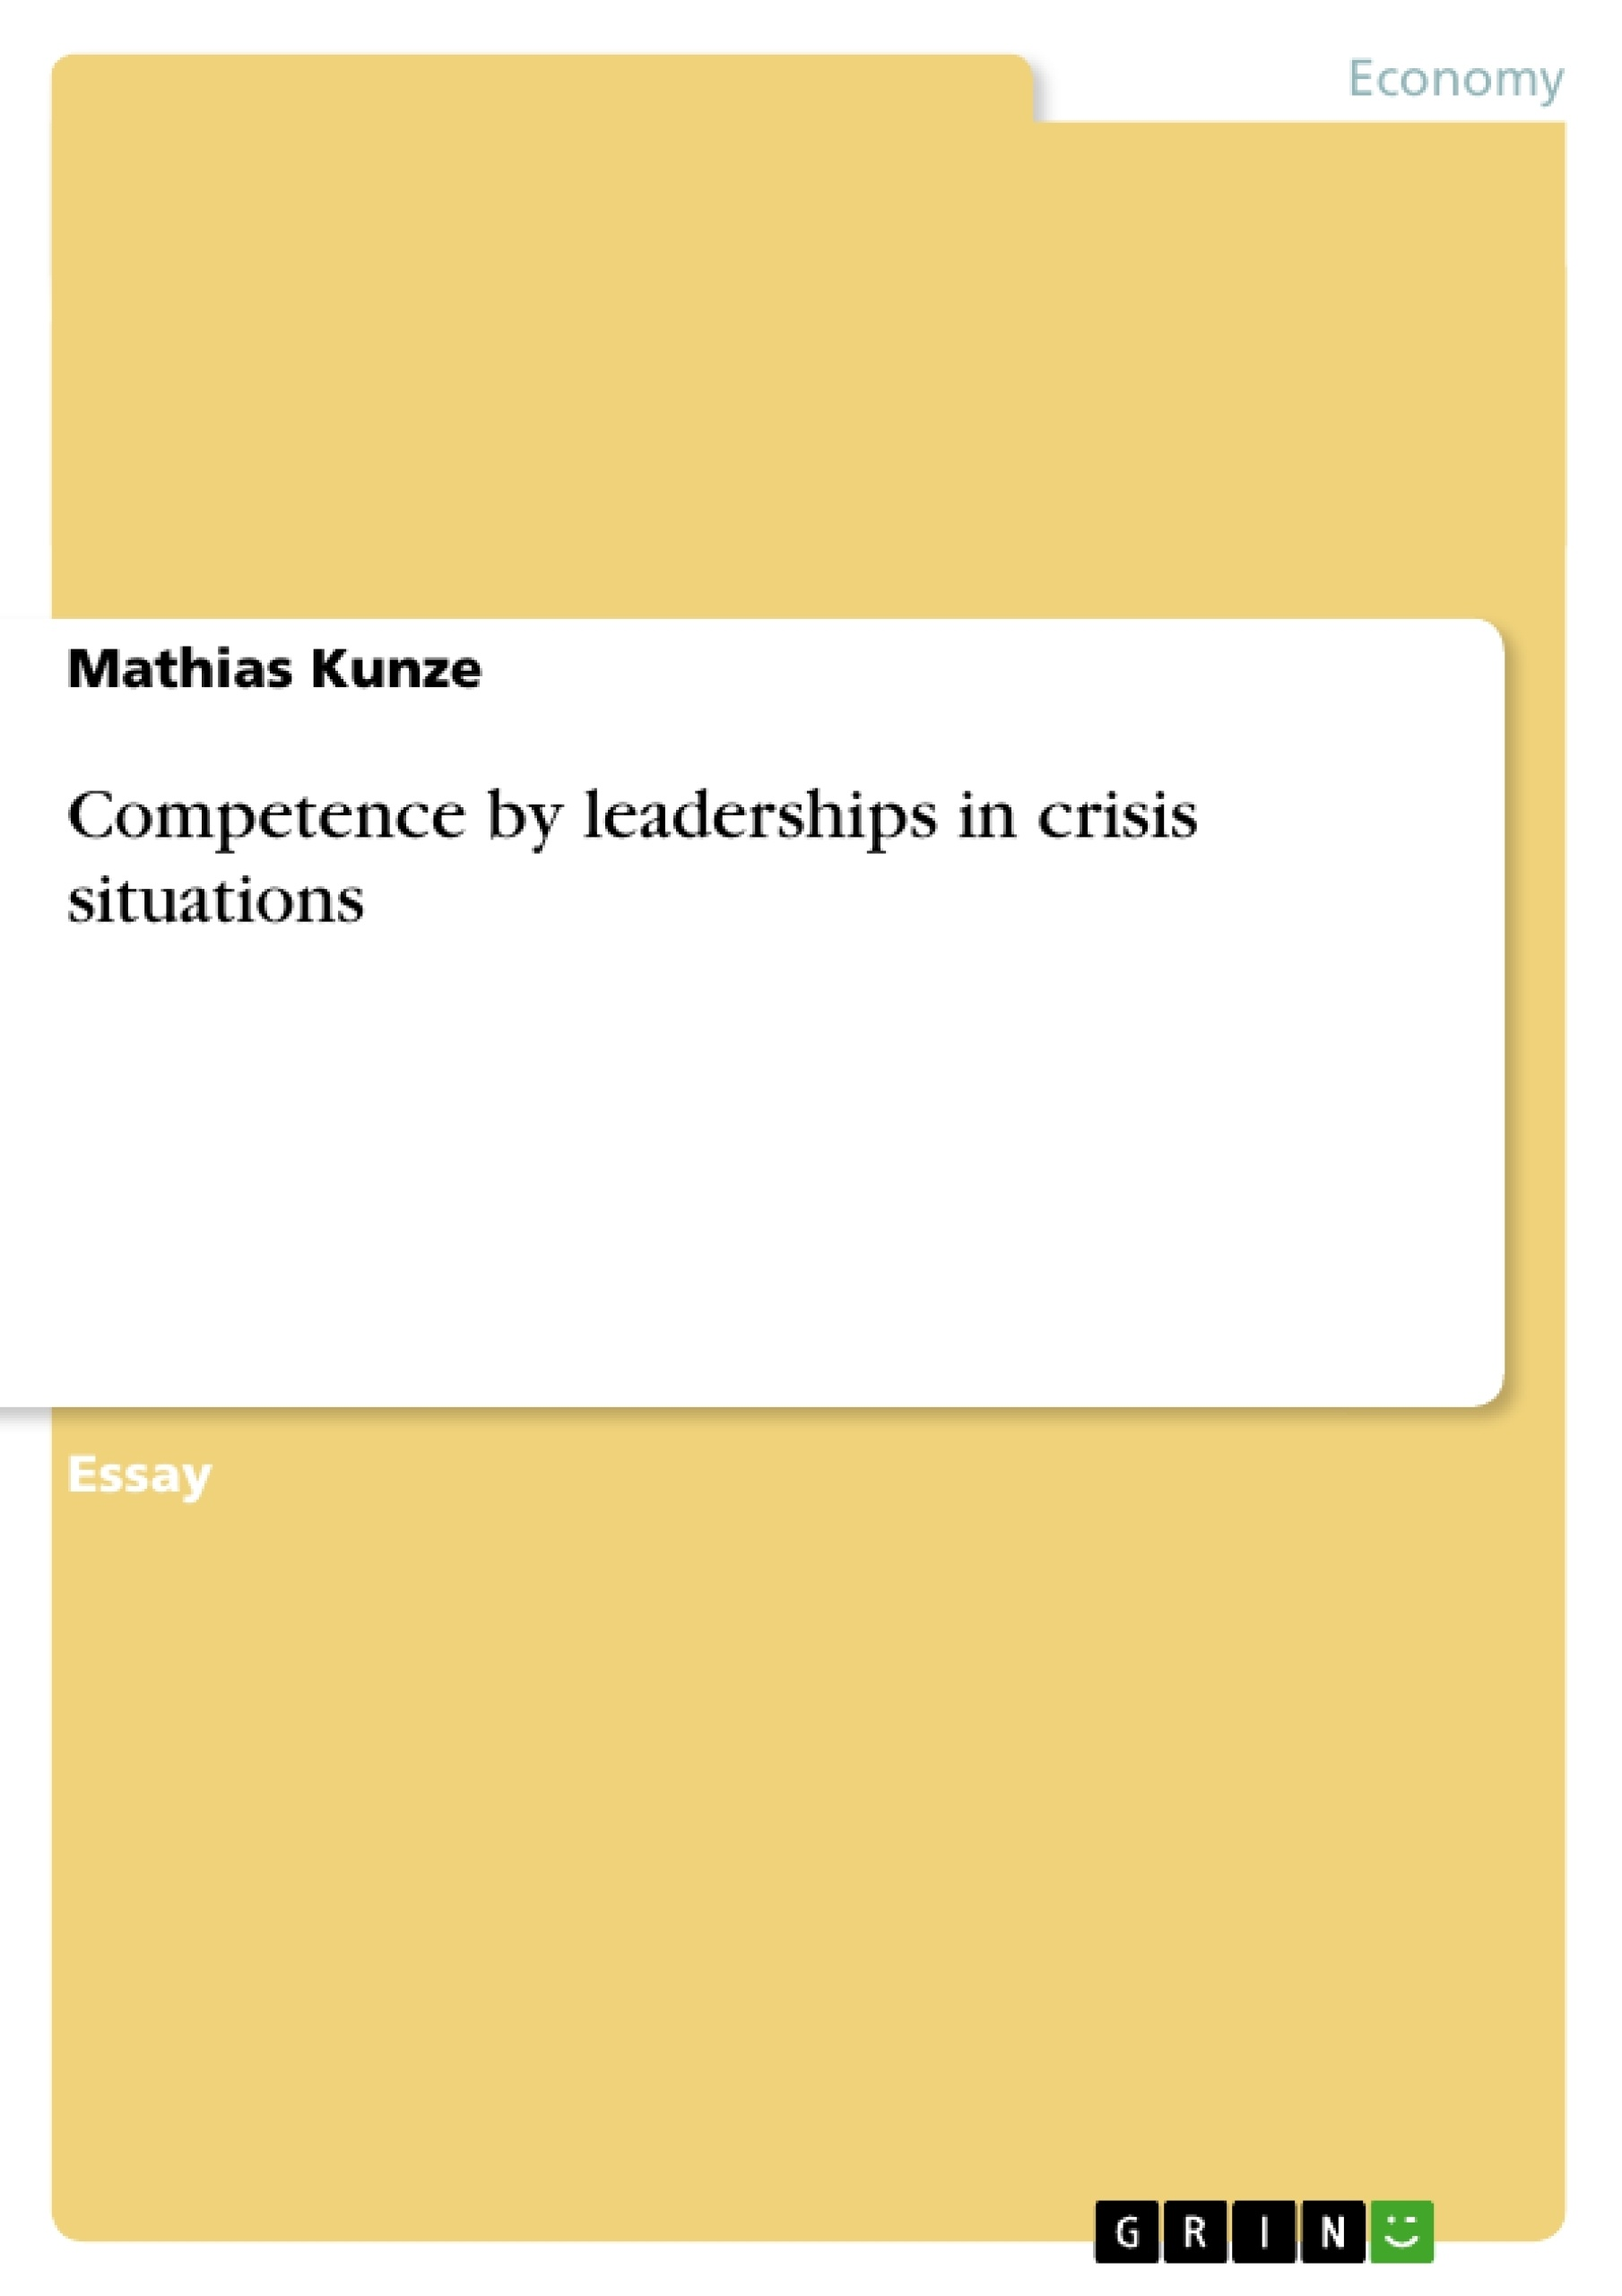 Title: Competence by leaderships in crisis situations